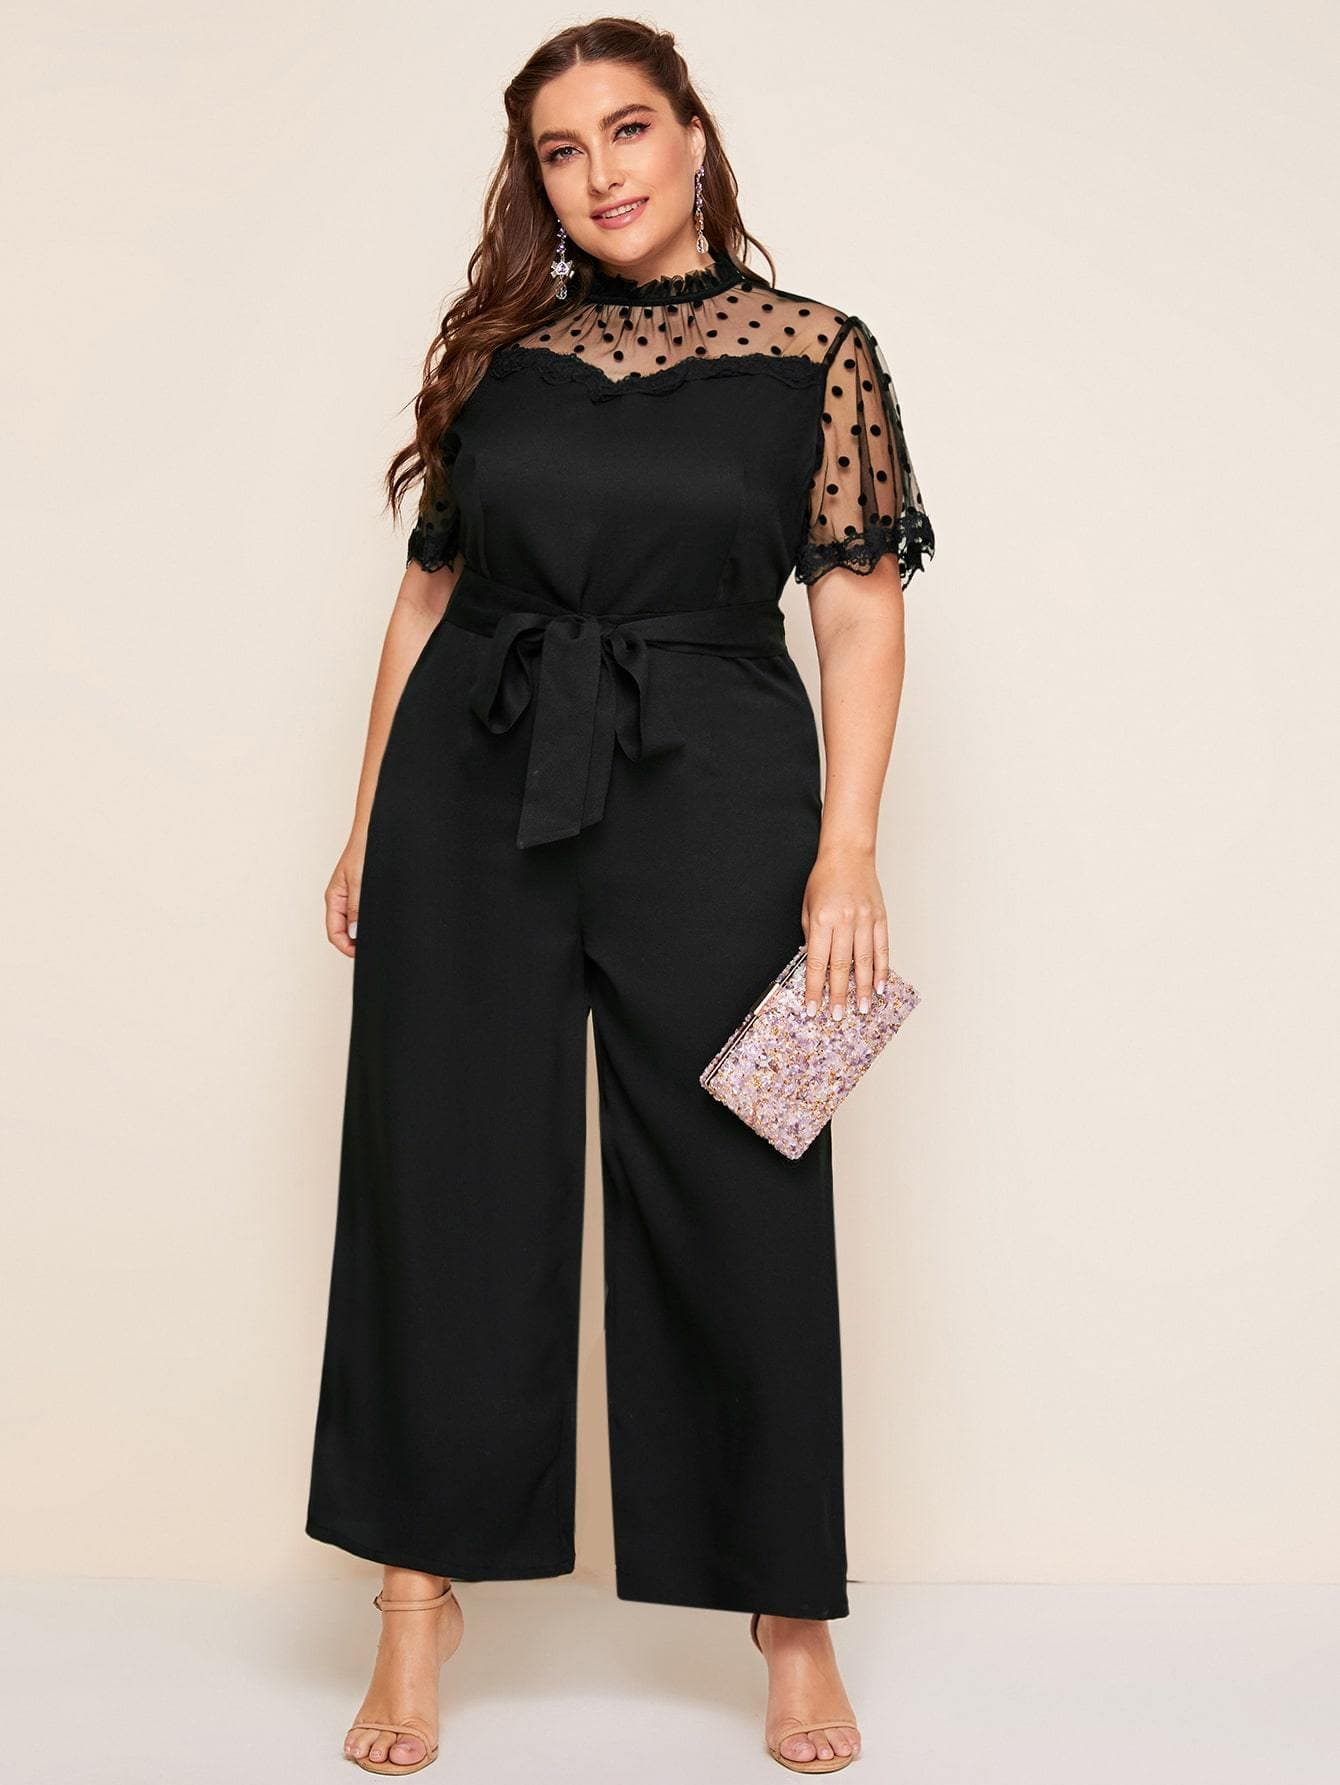 Plus Frilled Neck Dot Flocked Mesh Yoke Belted Jumpsuit - FLJ CORPORATIONS